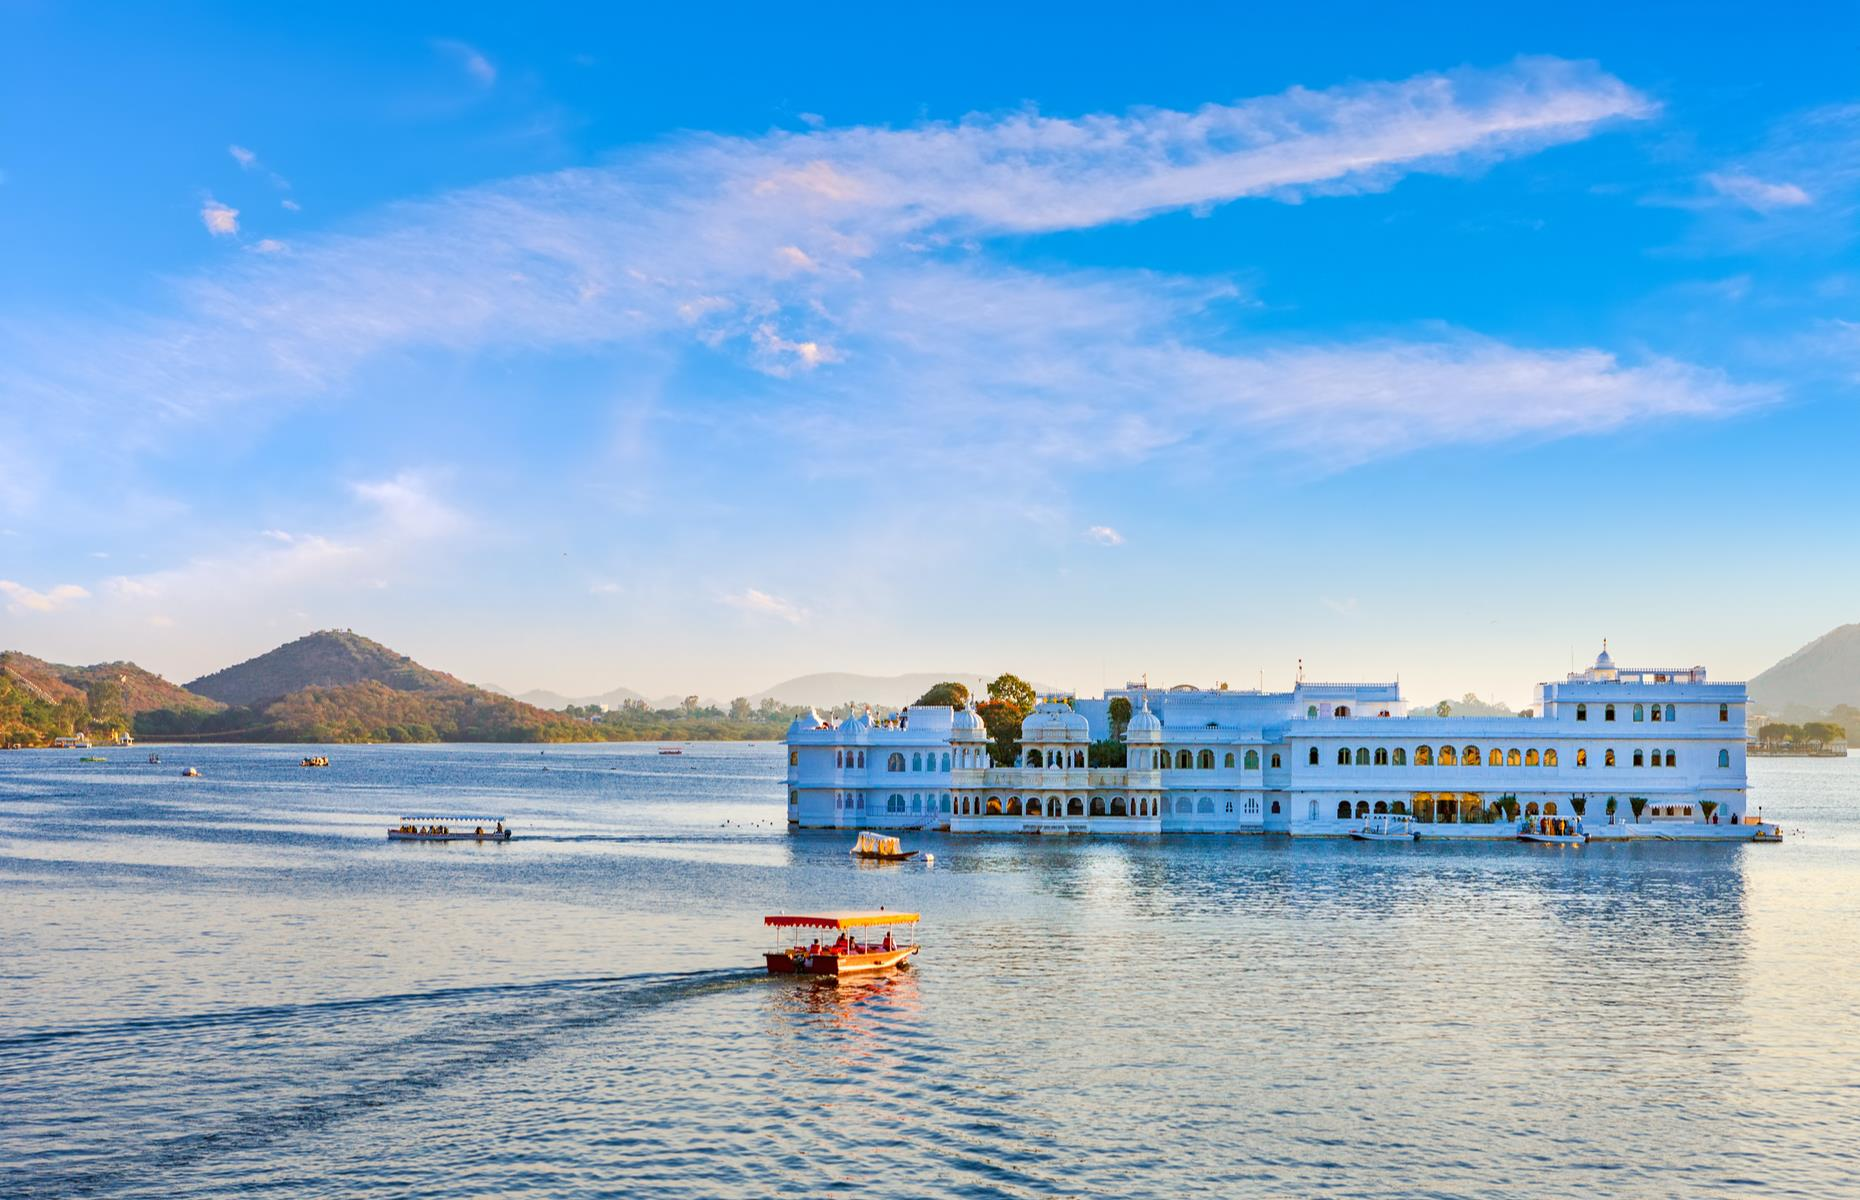 Slide 25 of 31: Dreamy Lake Pichola sits alongside the city of Udaipur in Rajasthan. It was created in 1362 so merchants could transport grain and was later enlarged by Maharana Udai Singh, who built his royal palaces and temples on the water's edge. The luxurious Taj Lake Palace (pictured), set on Jag Island in the heart of the lake, is the most famous sight. It was also one of the locations featured in the 1983 James Bond film Octopussy.